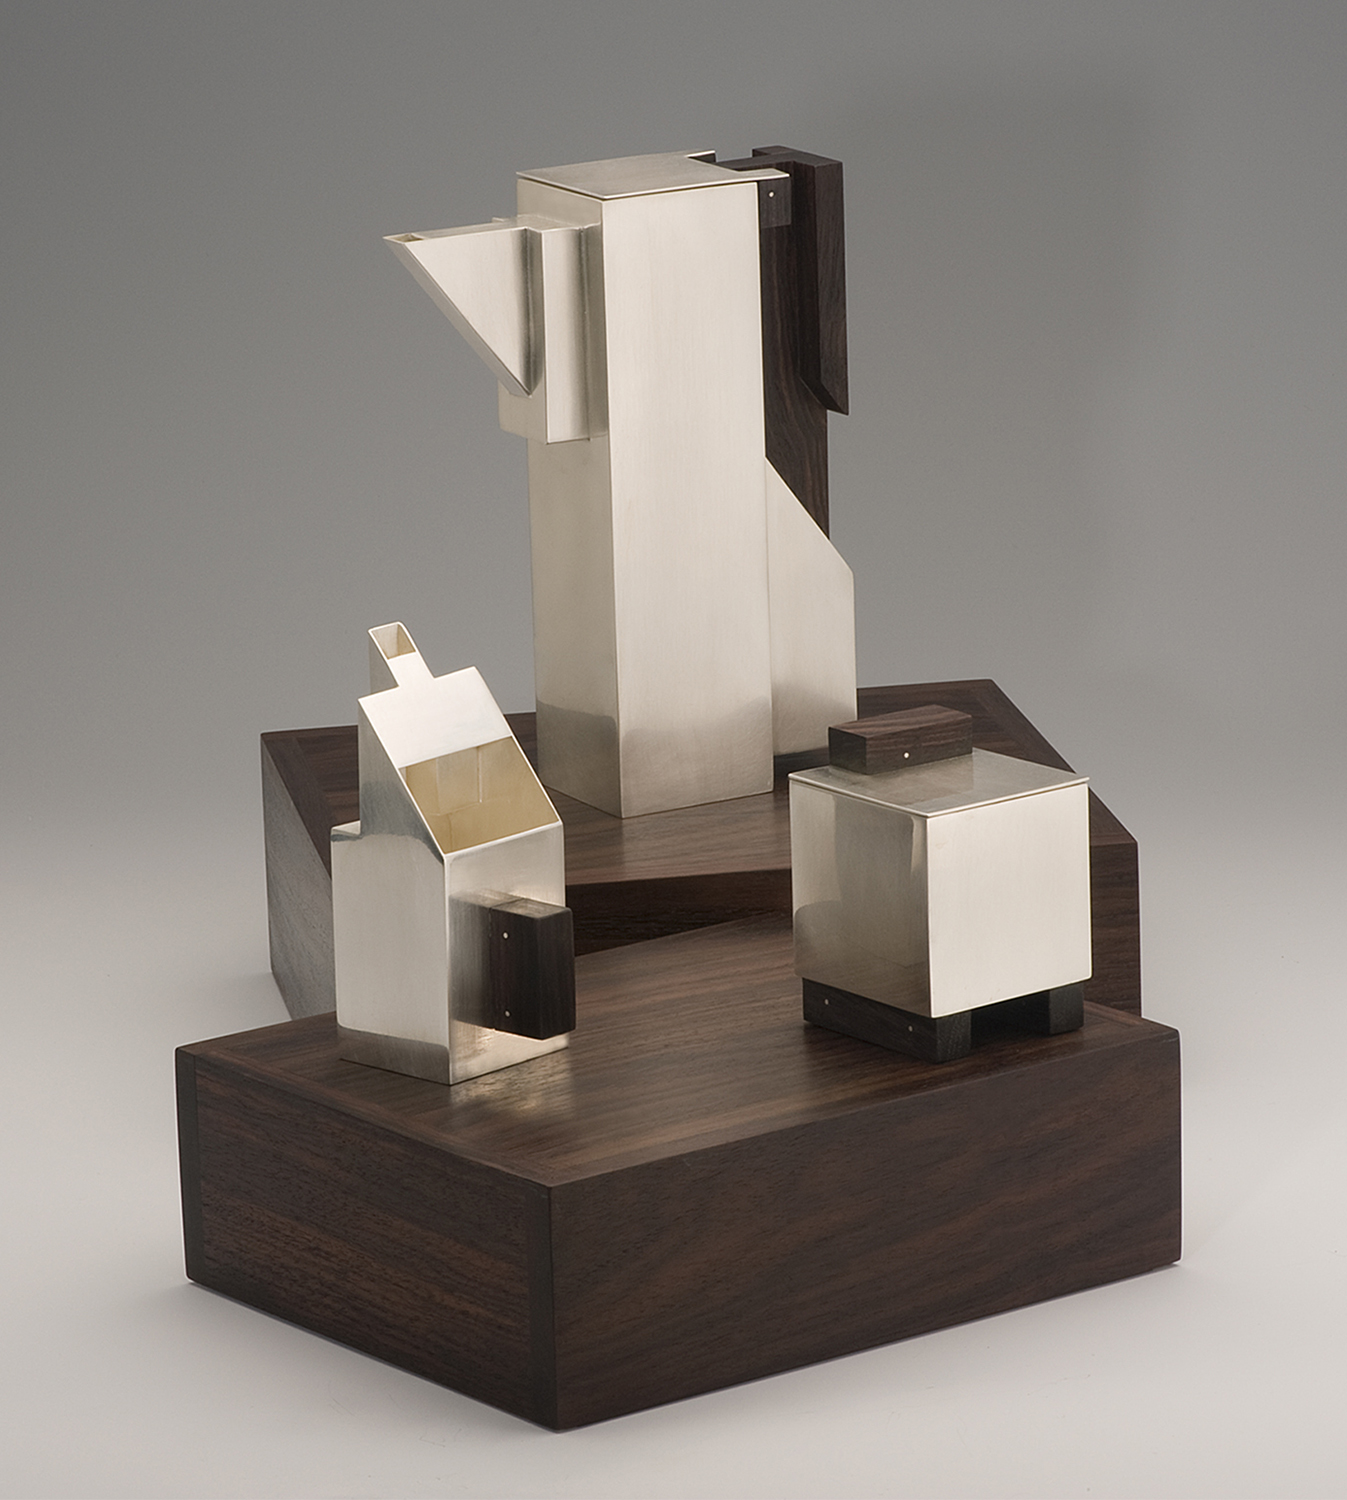 Puzzle Teaset-open  |  2010  |  sterling silver, rosewood  |  10.25 x 8.5 x 3.33 inches